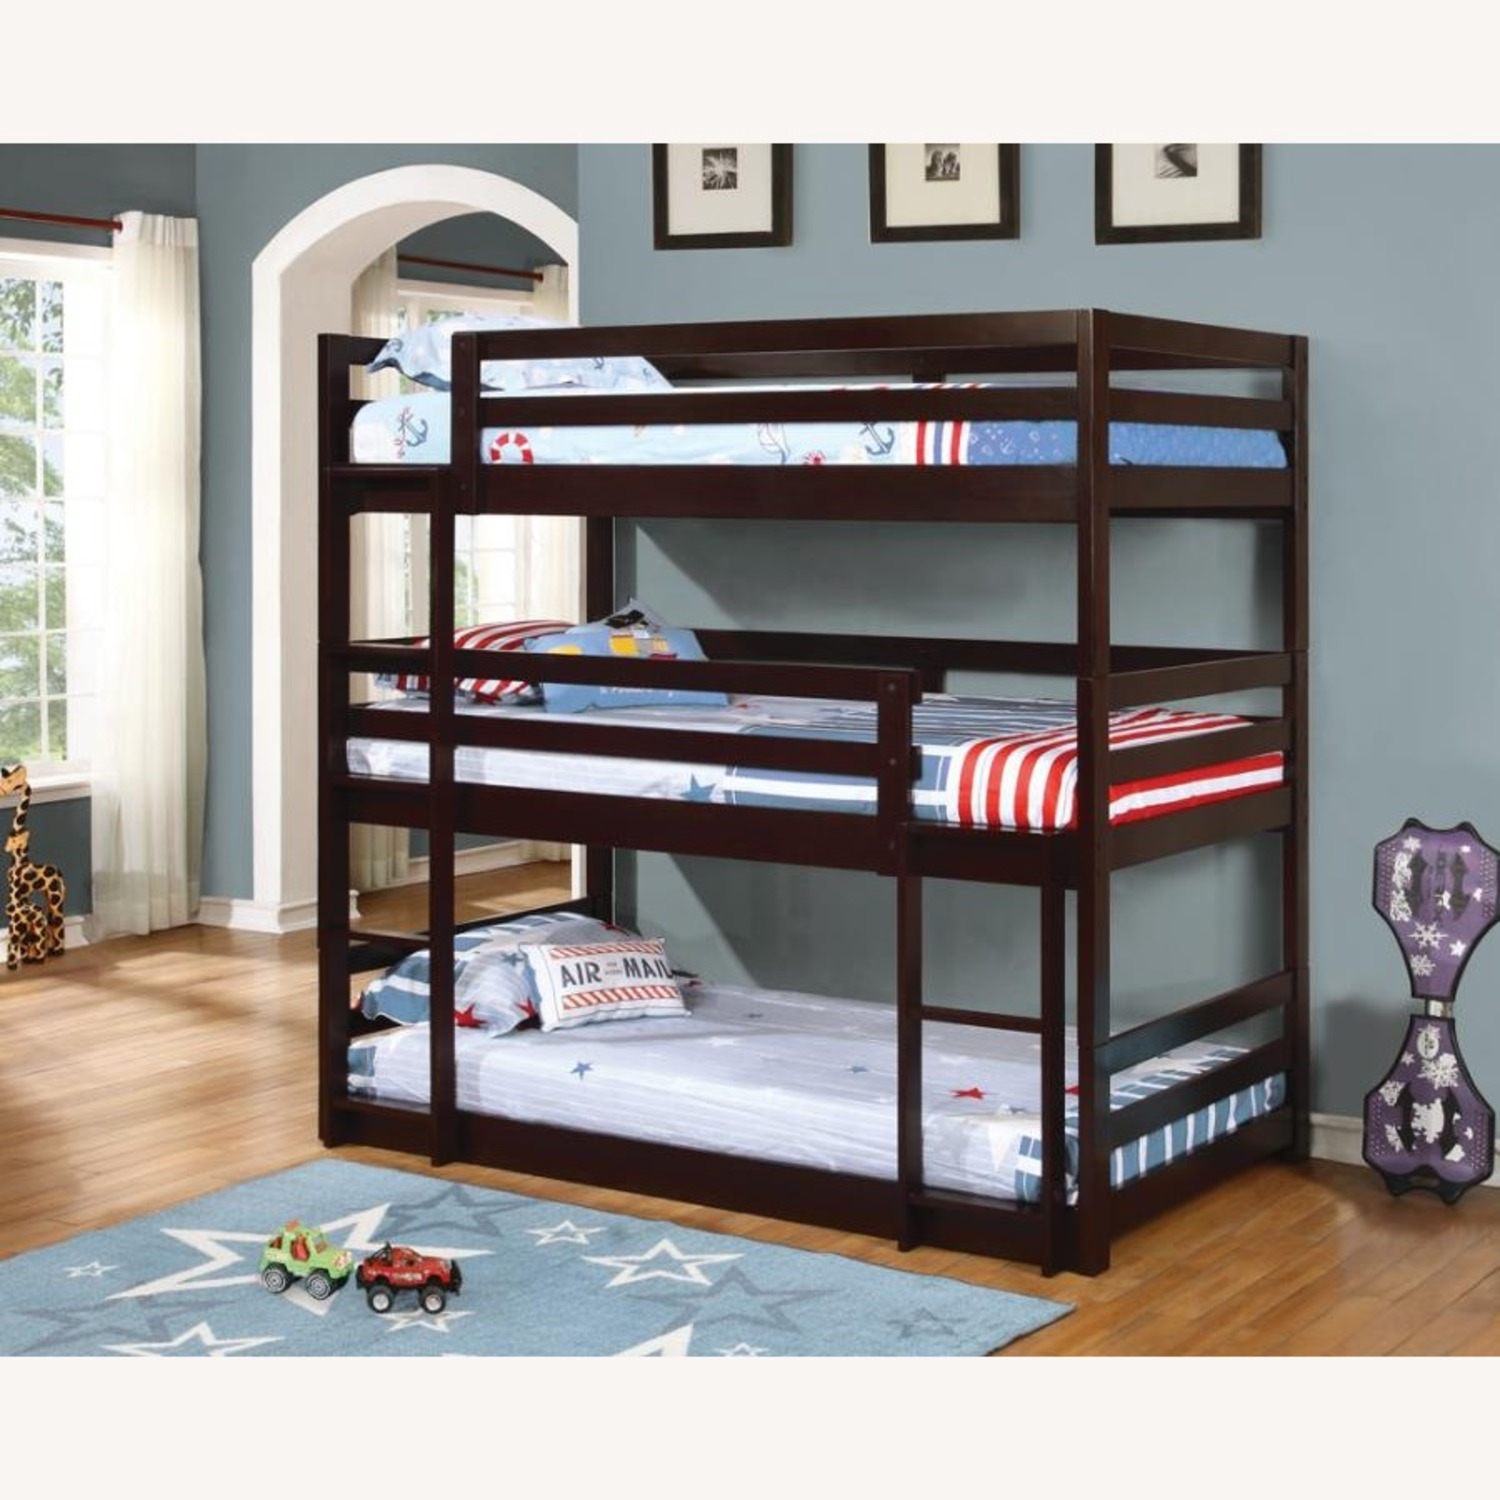 Triple Twin Bunk Bed In Cappuccino Finish - image-2